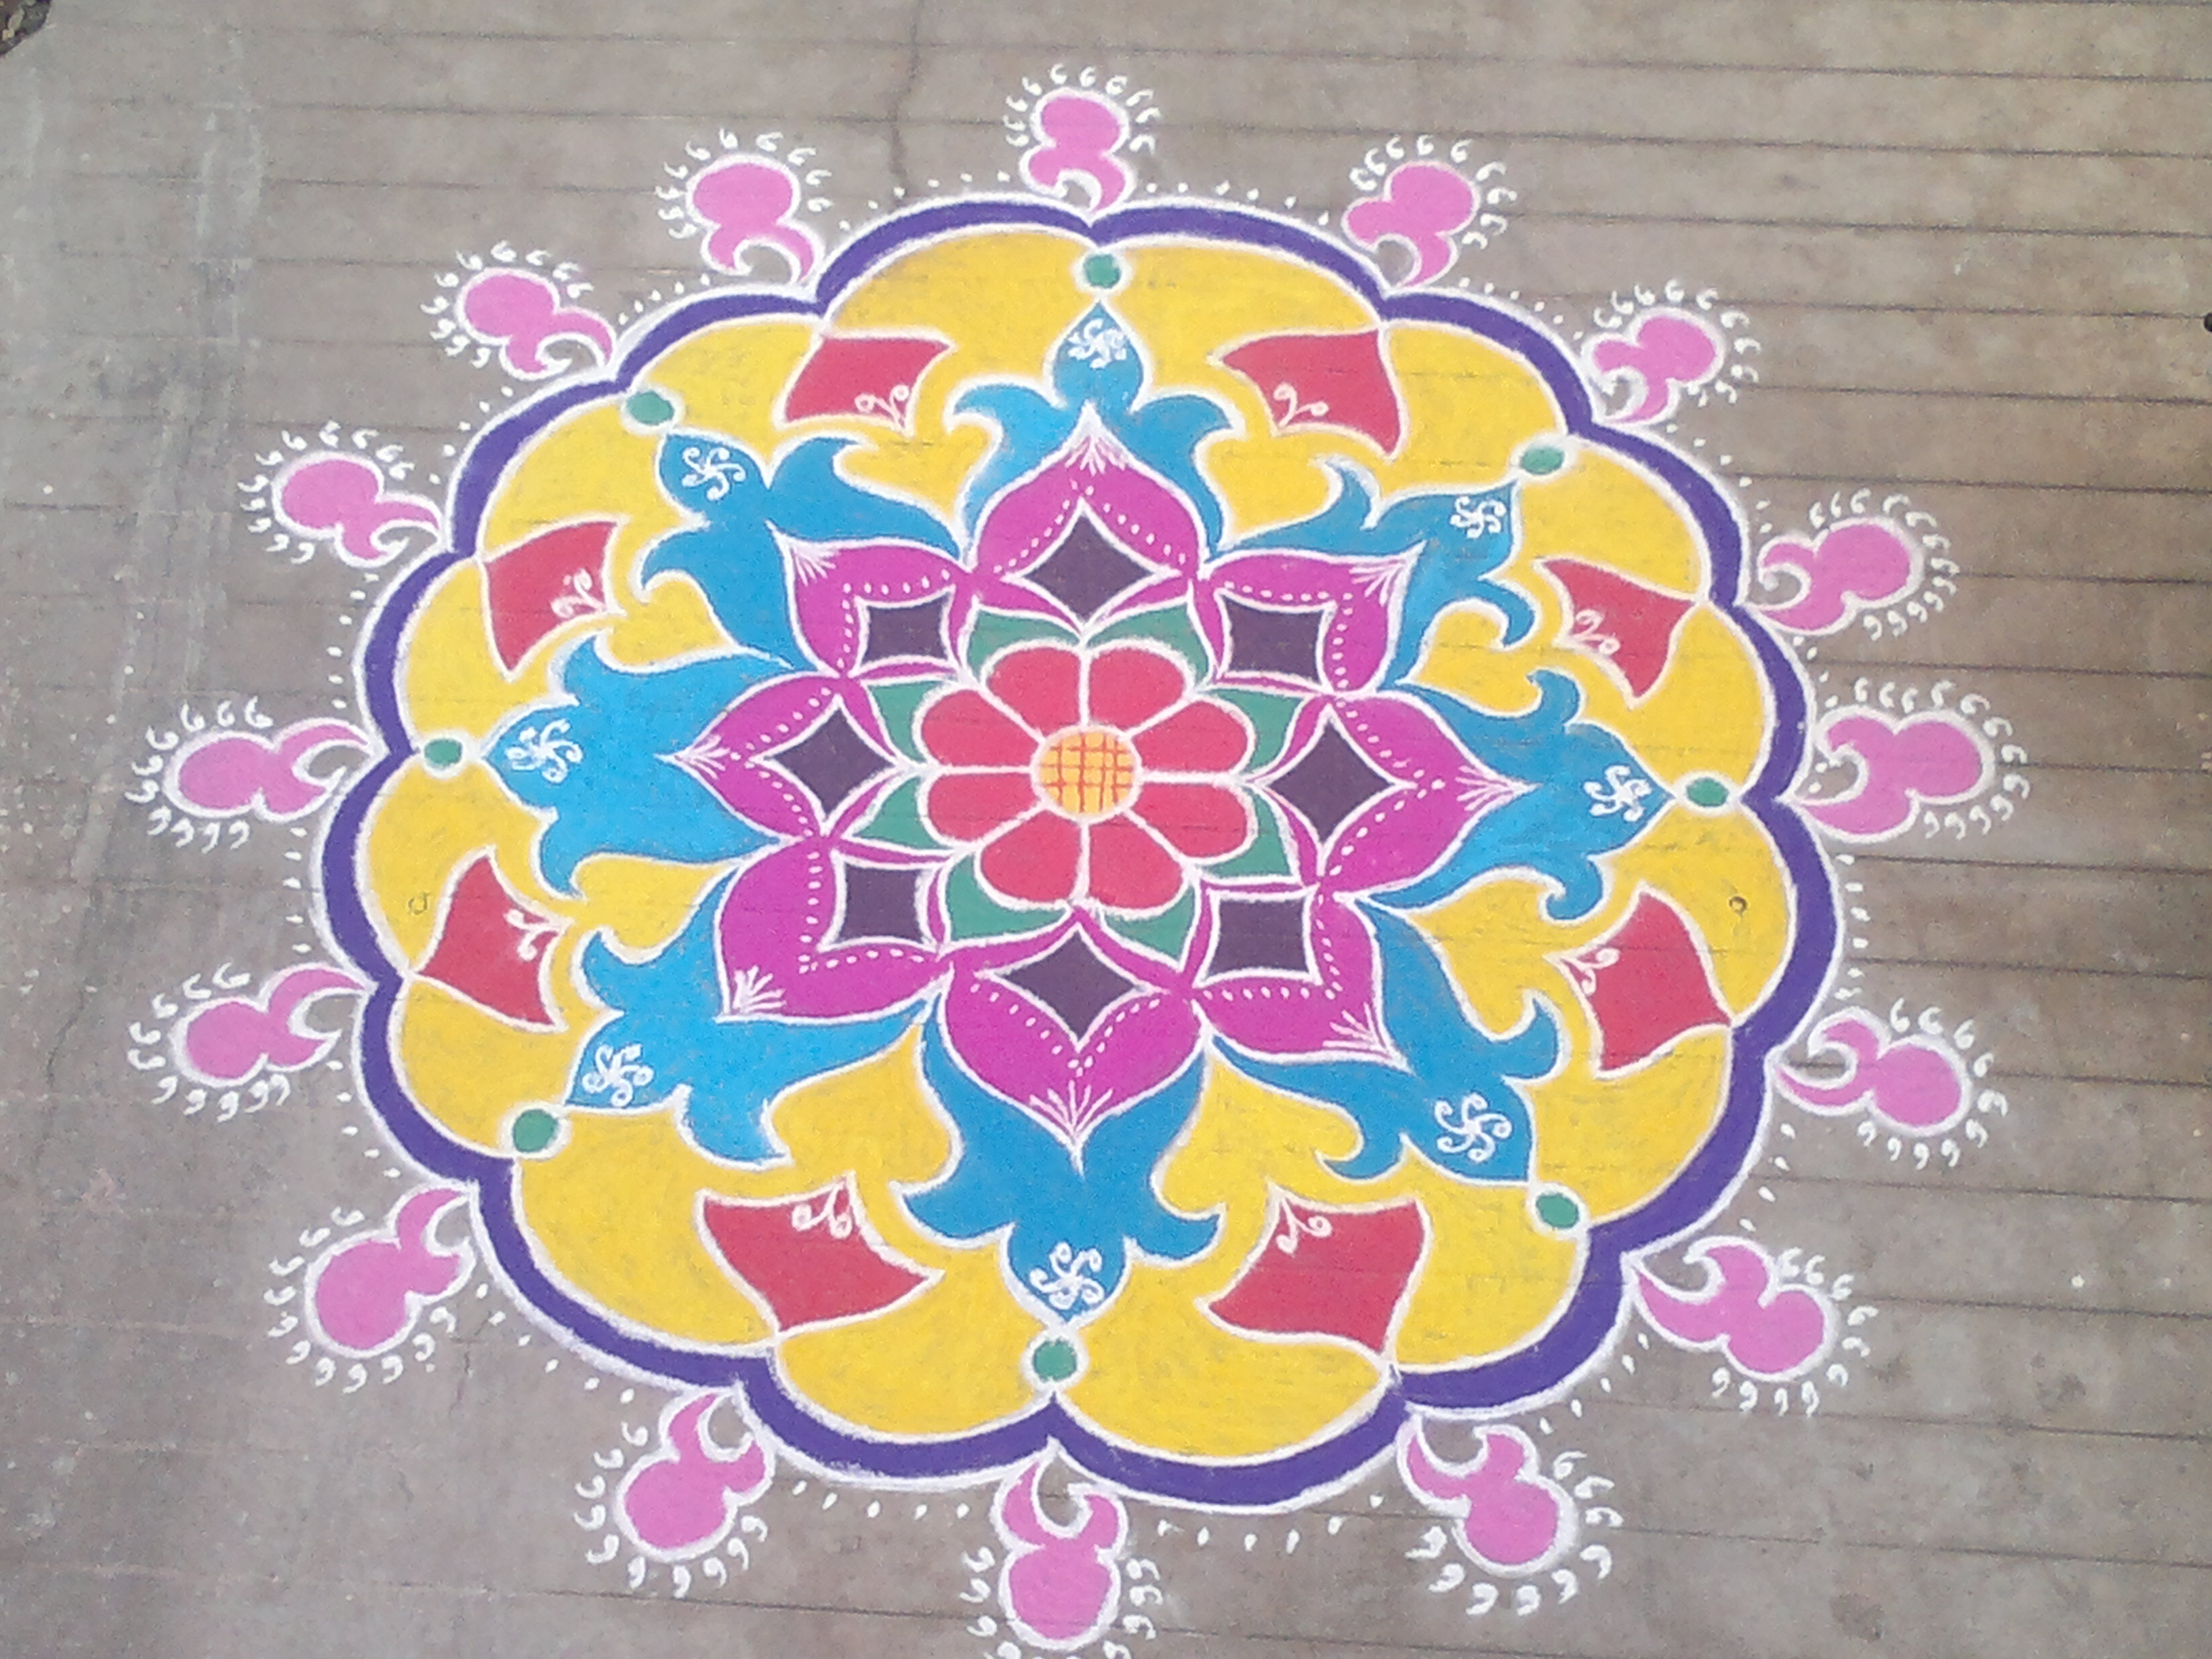 2018 Happy Diwali Rangoli Designs Peacock Patterns Flowers Images